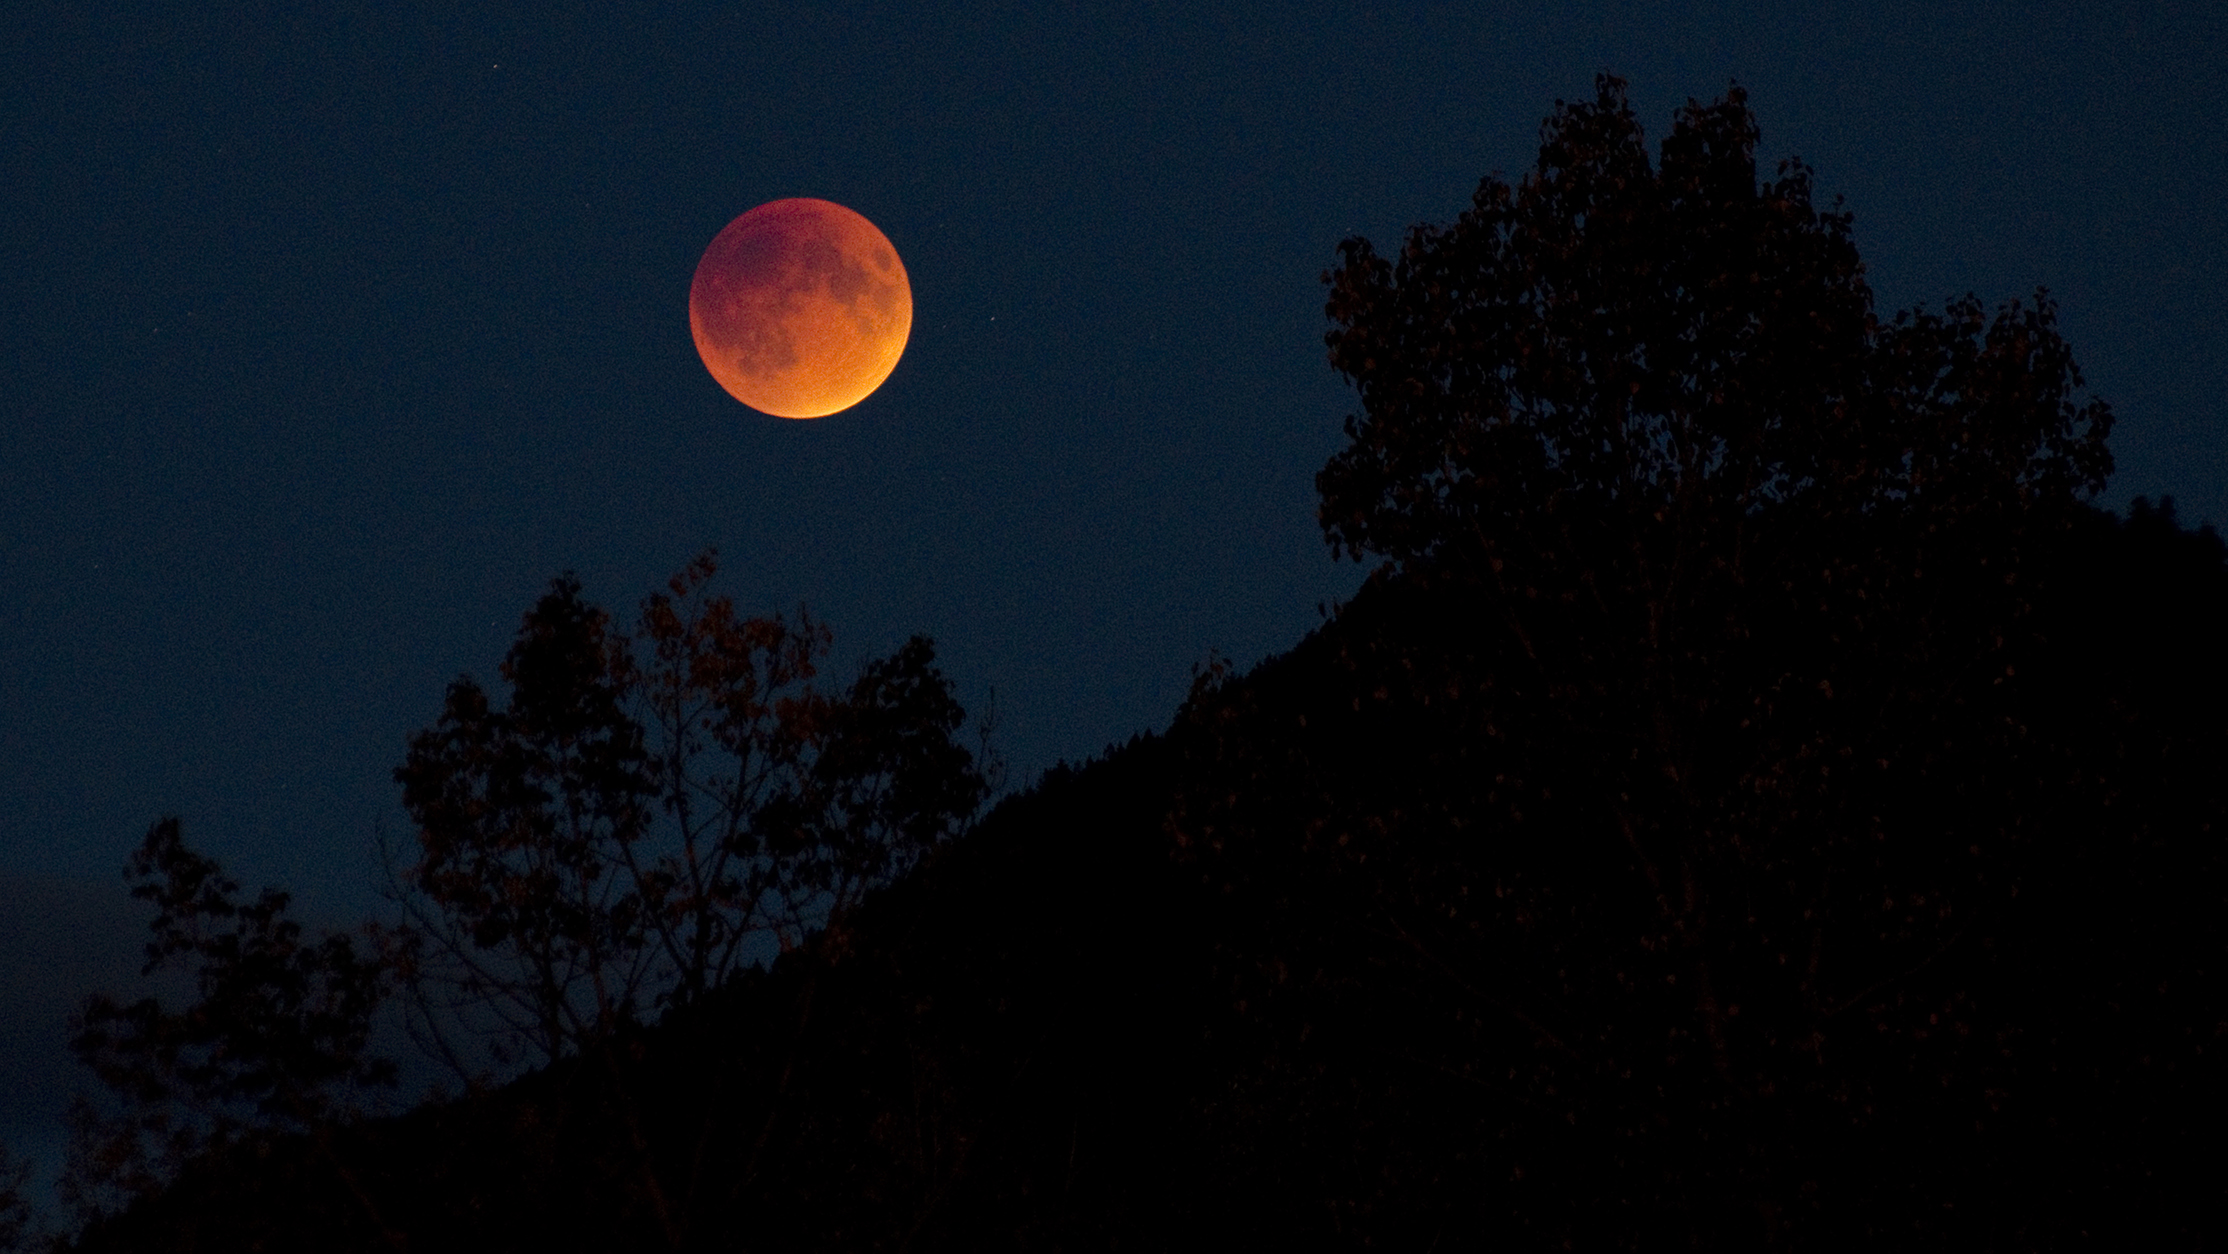 Blood moon with landscape by Darren Robinson